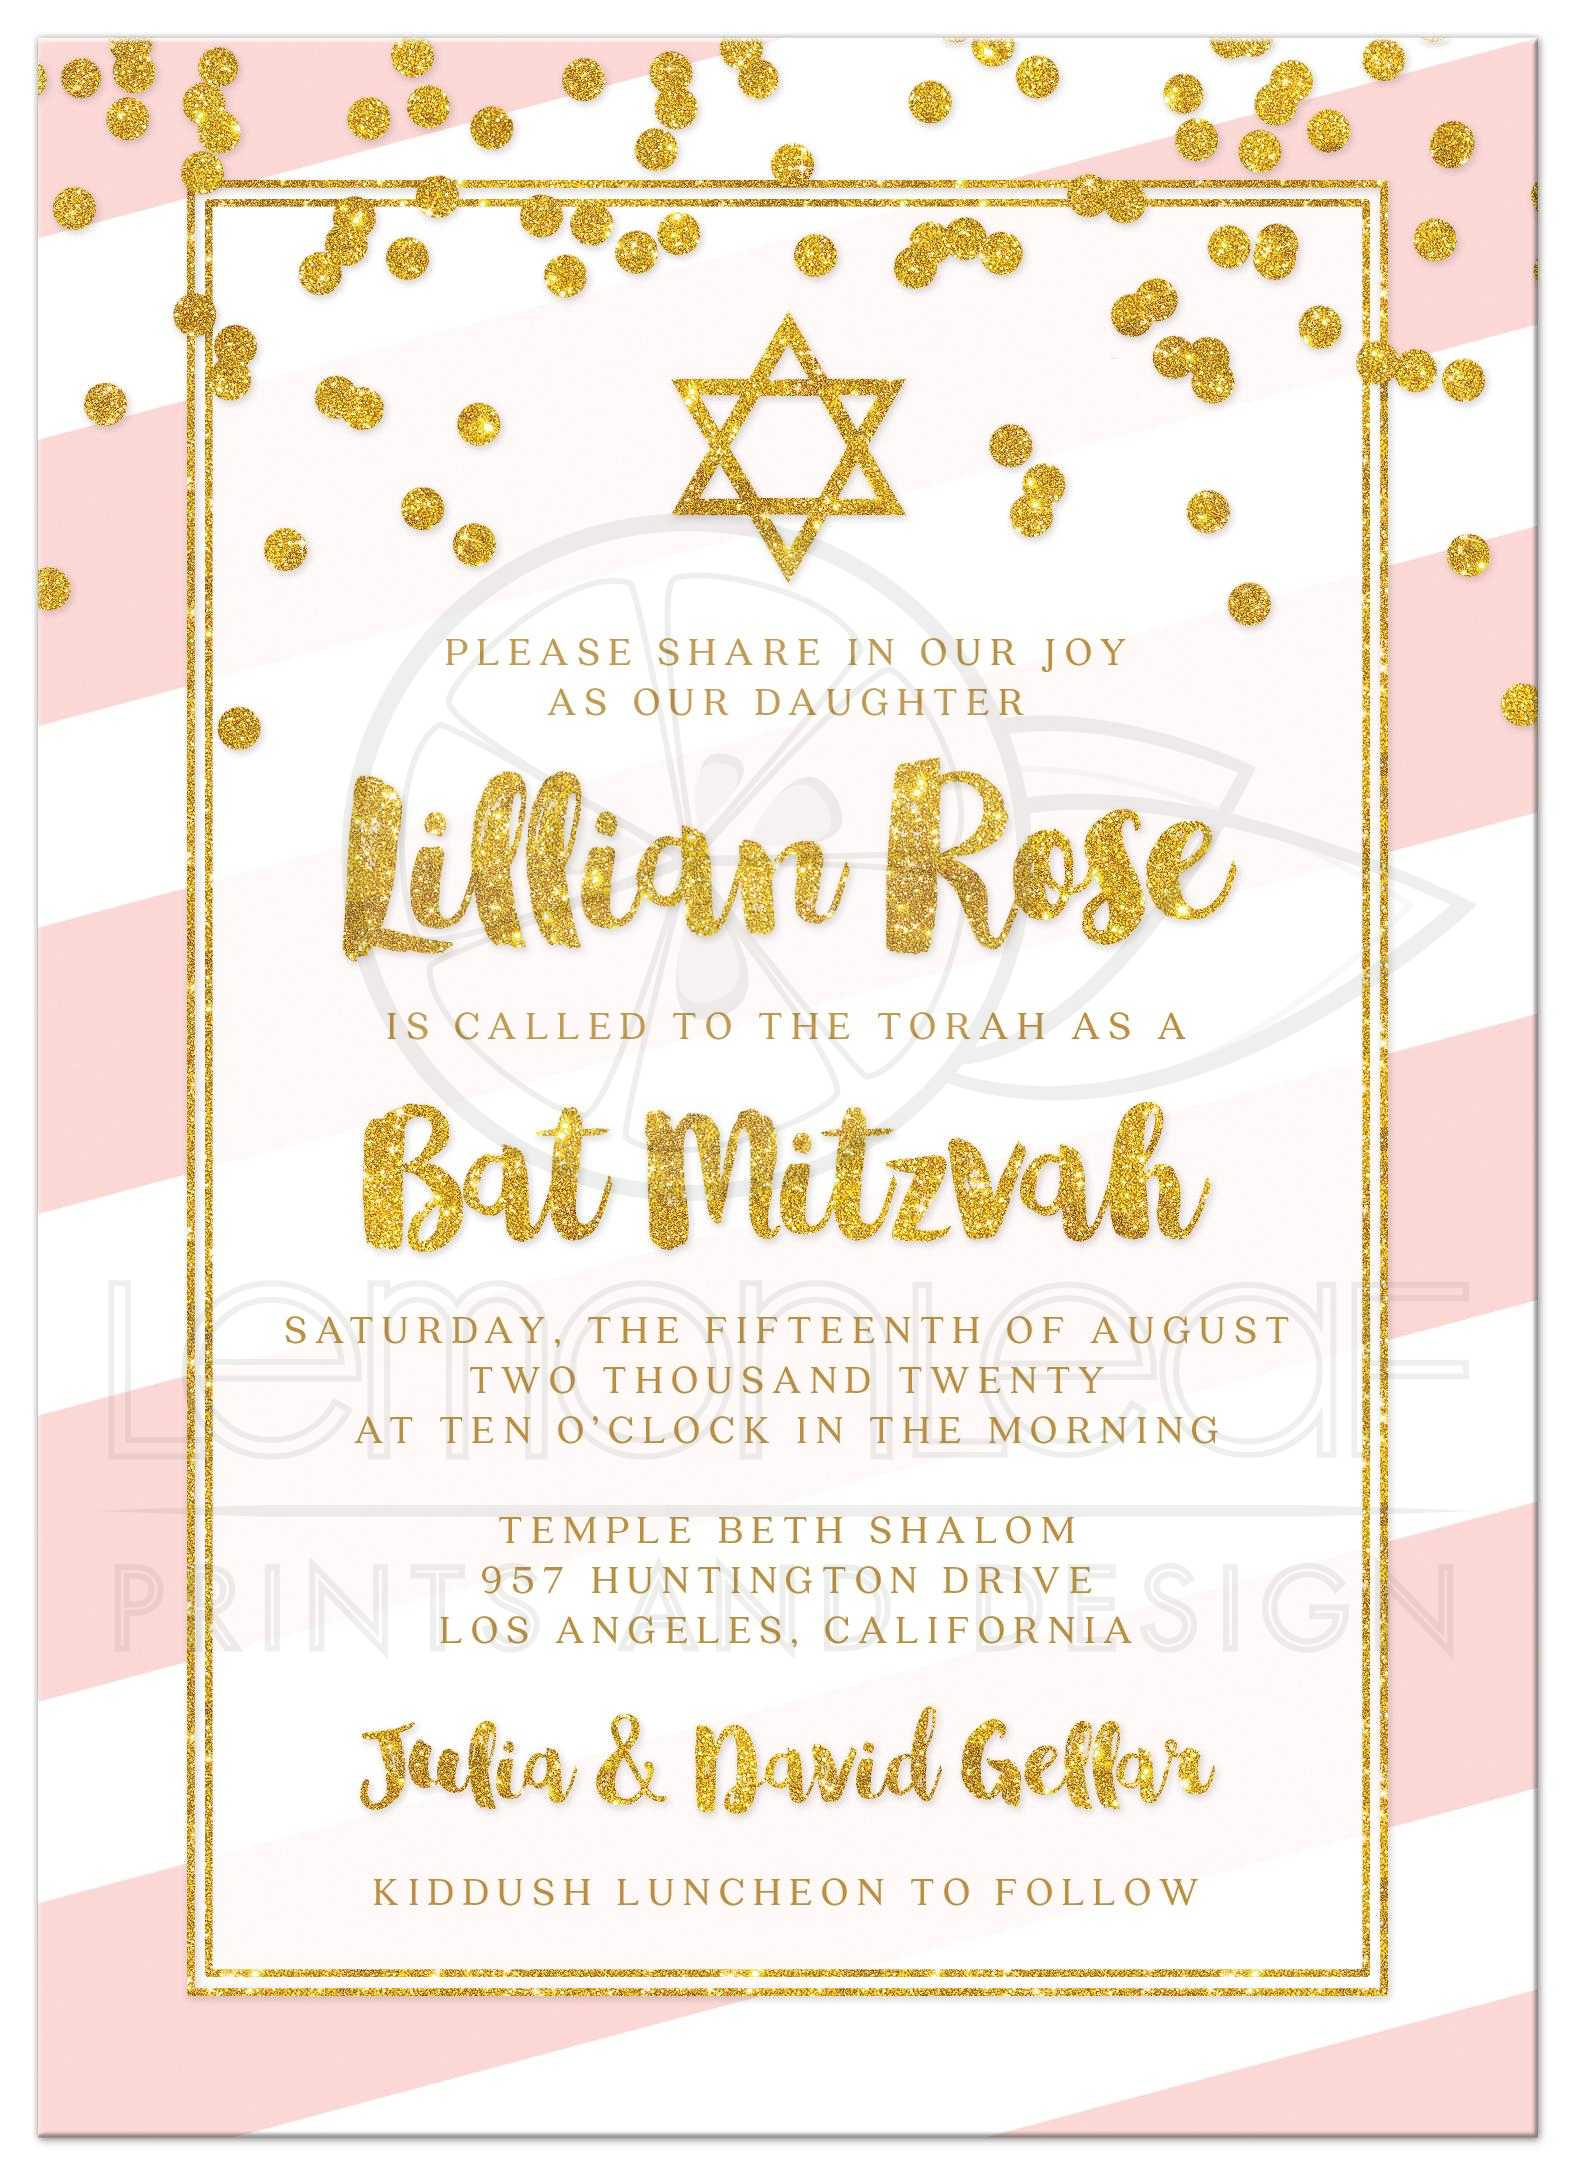 Bat mitzvah invitations pink stripes gold confetti pink stripes and gold confetti bat mitzvah invitations m4hsunfo